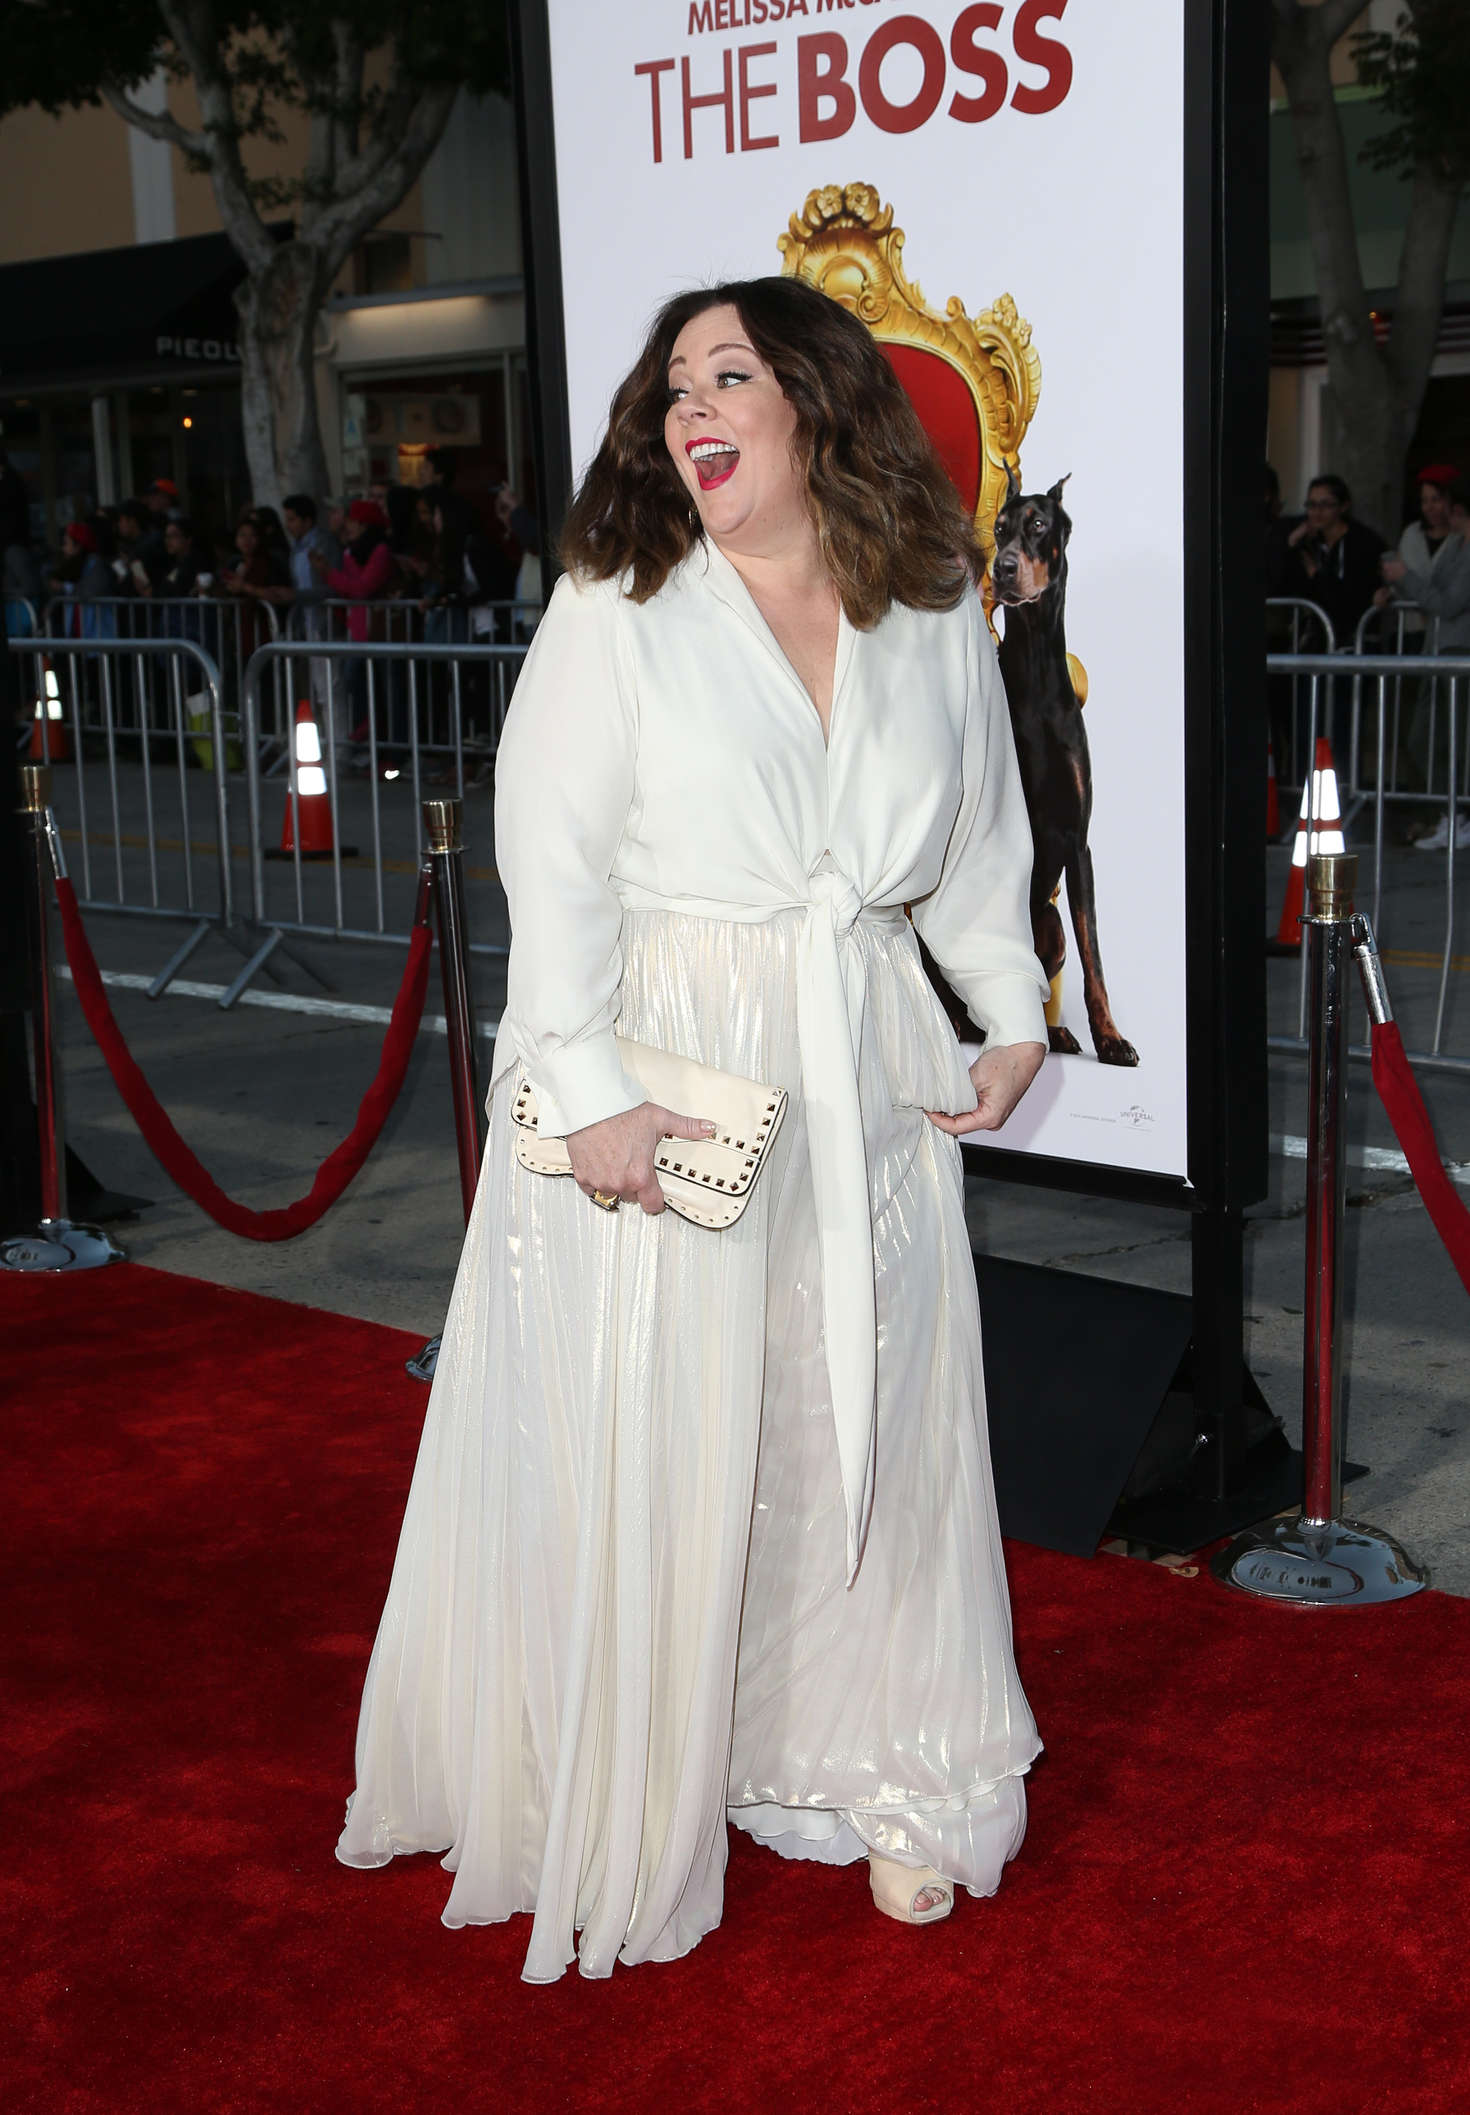 Melissa McCarthy The Boss Premiere in Los Angeles